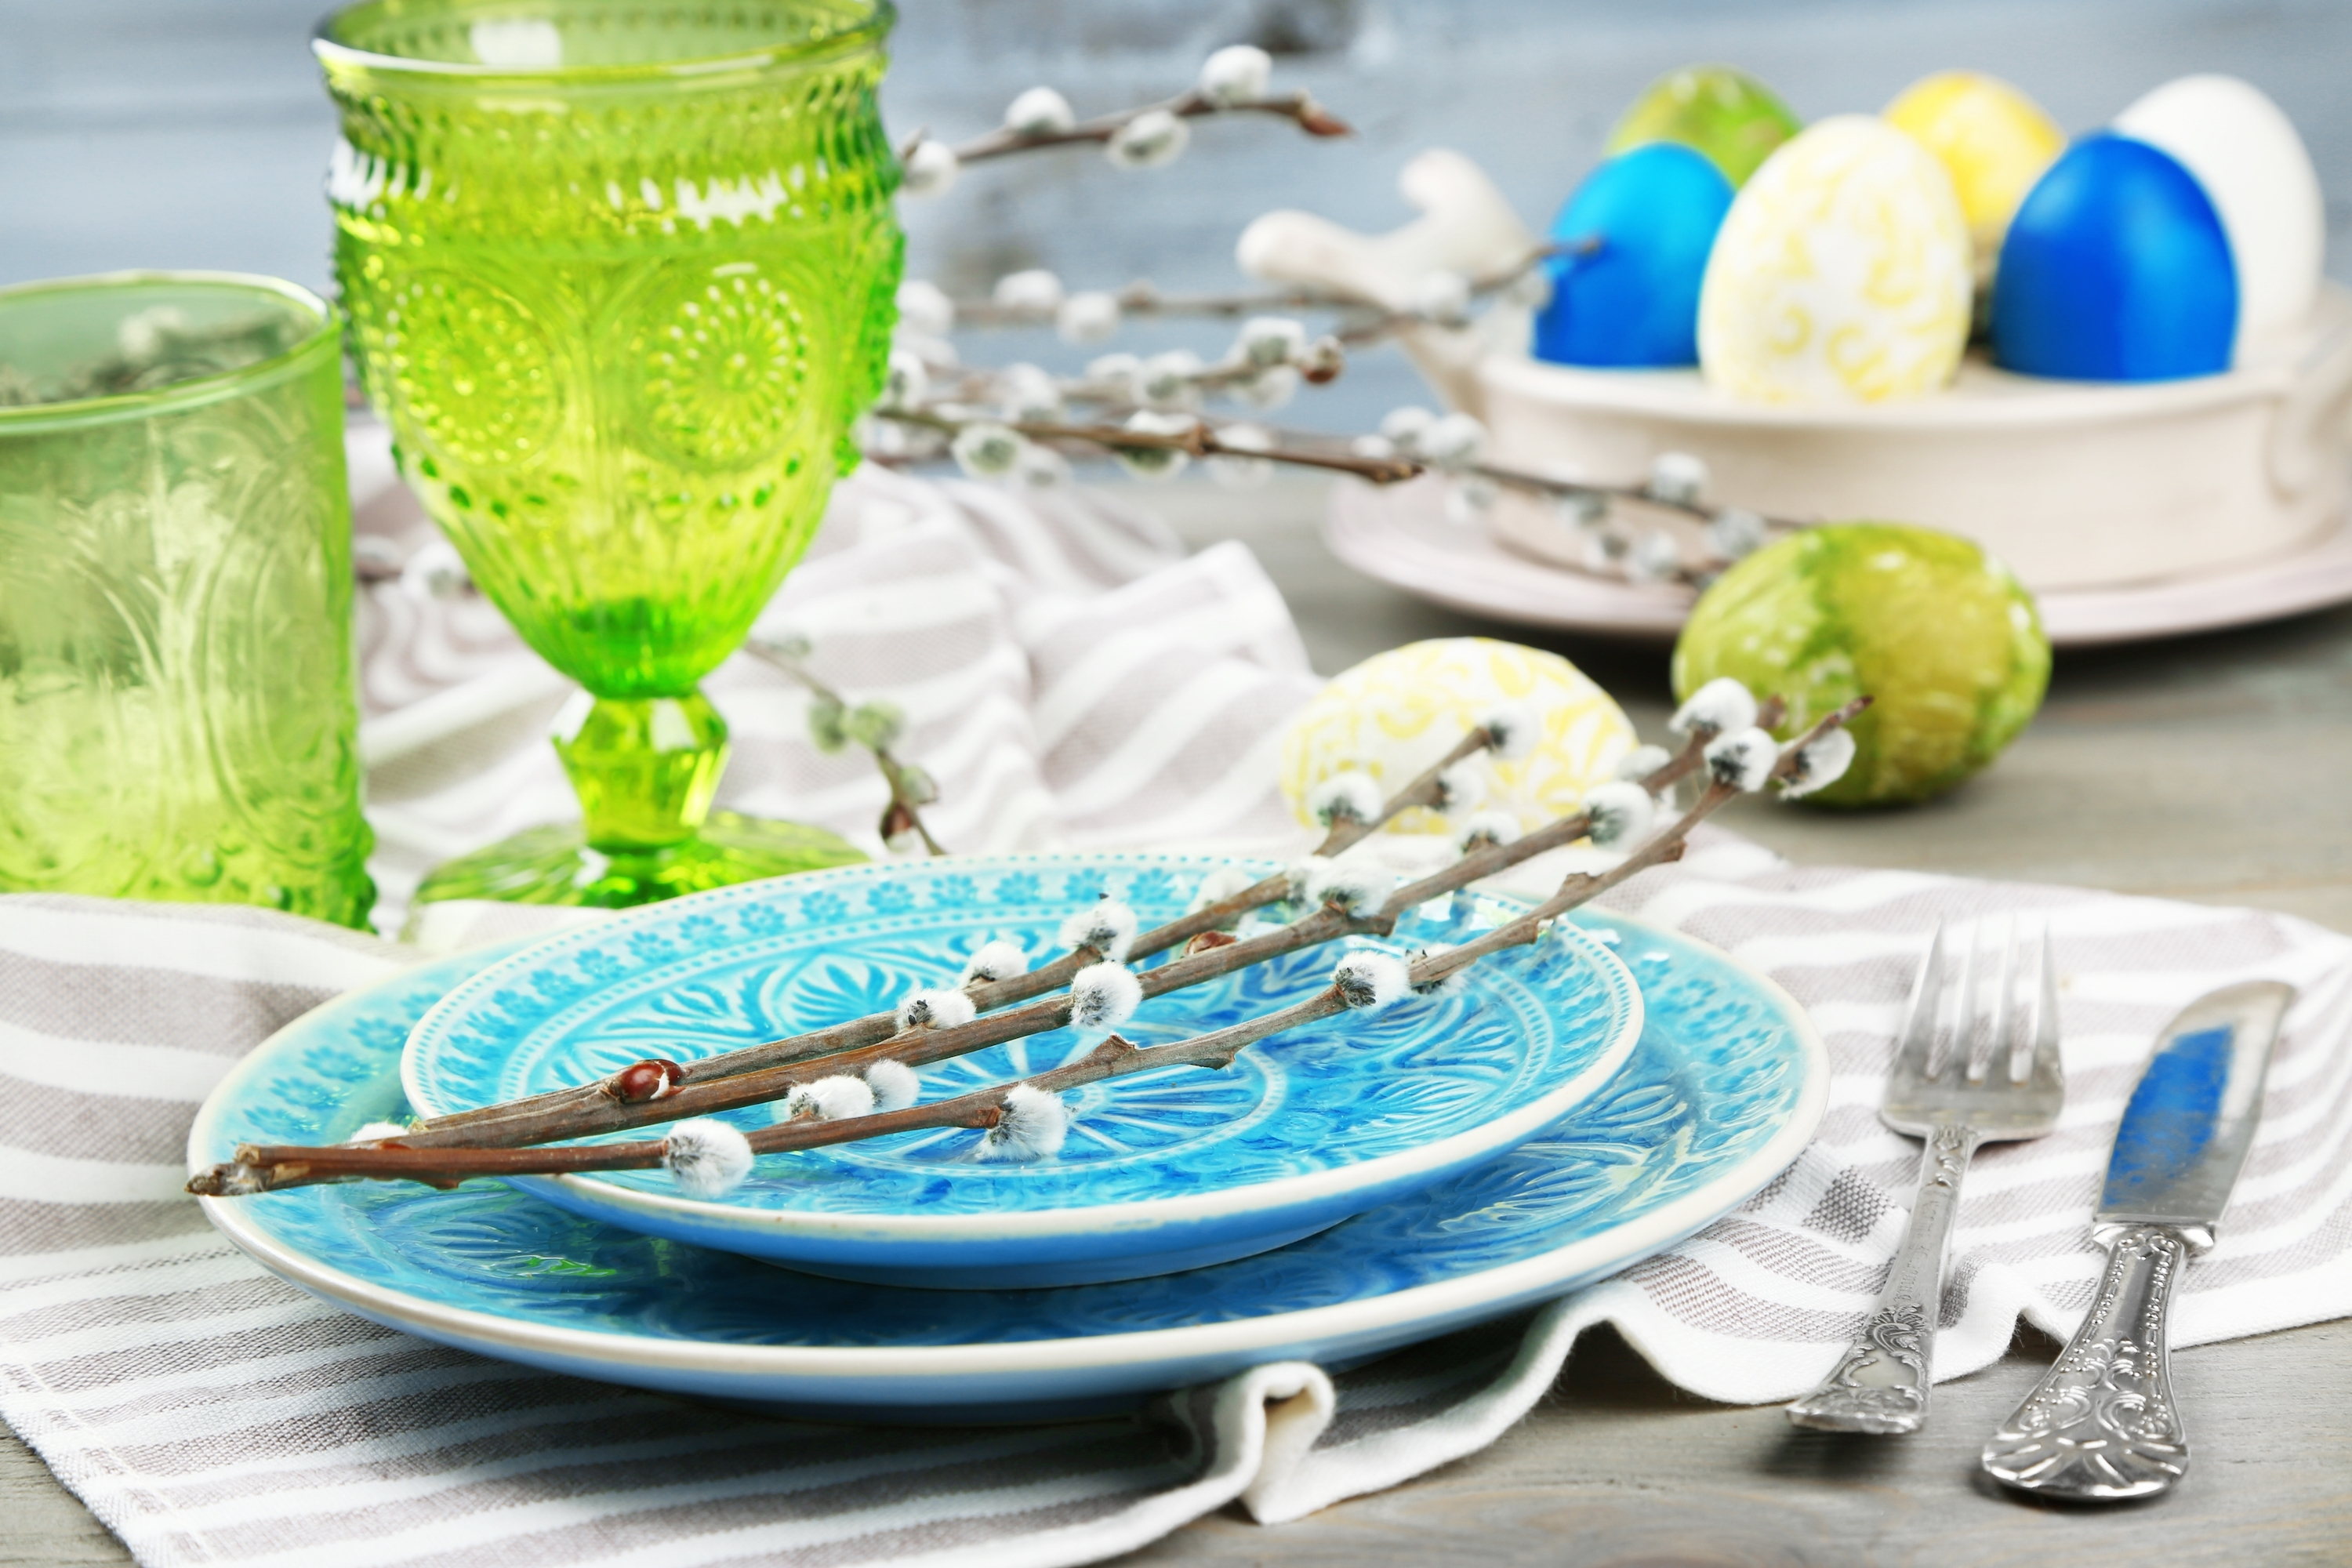 7be7c9e565a2ab005deb_Easter_.jpg